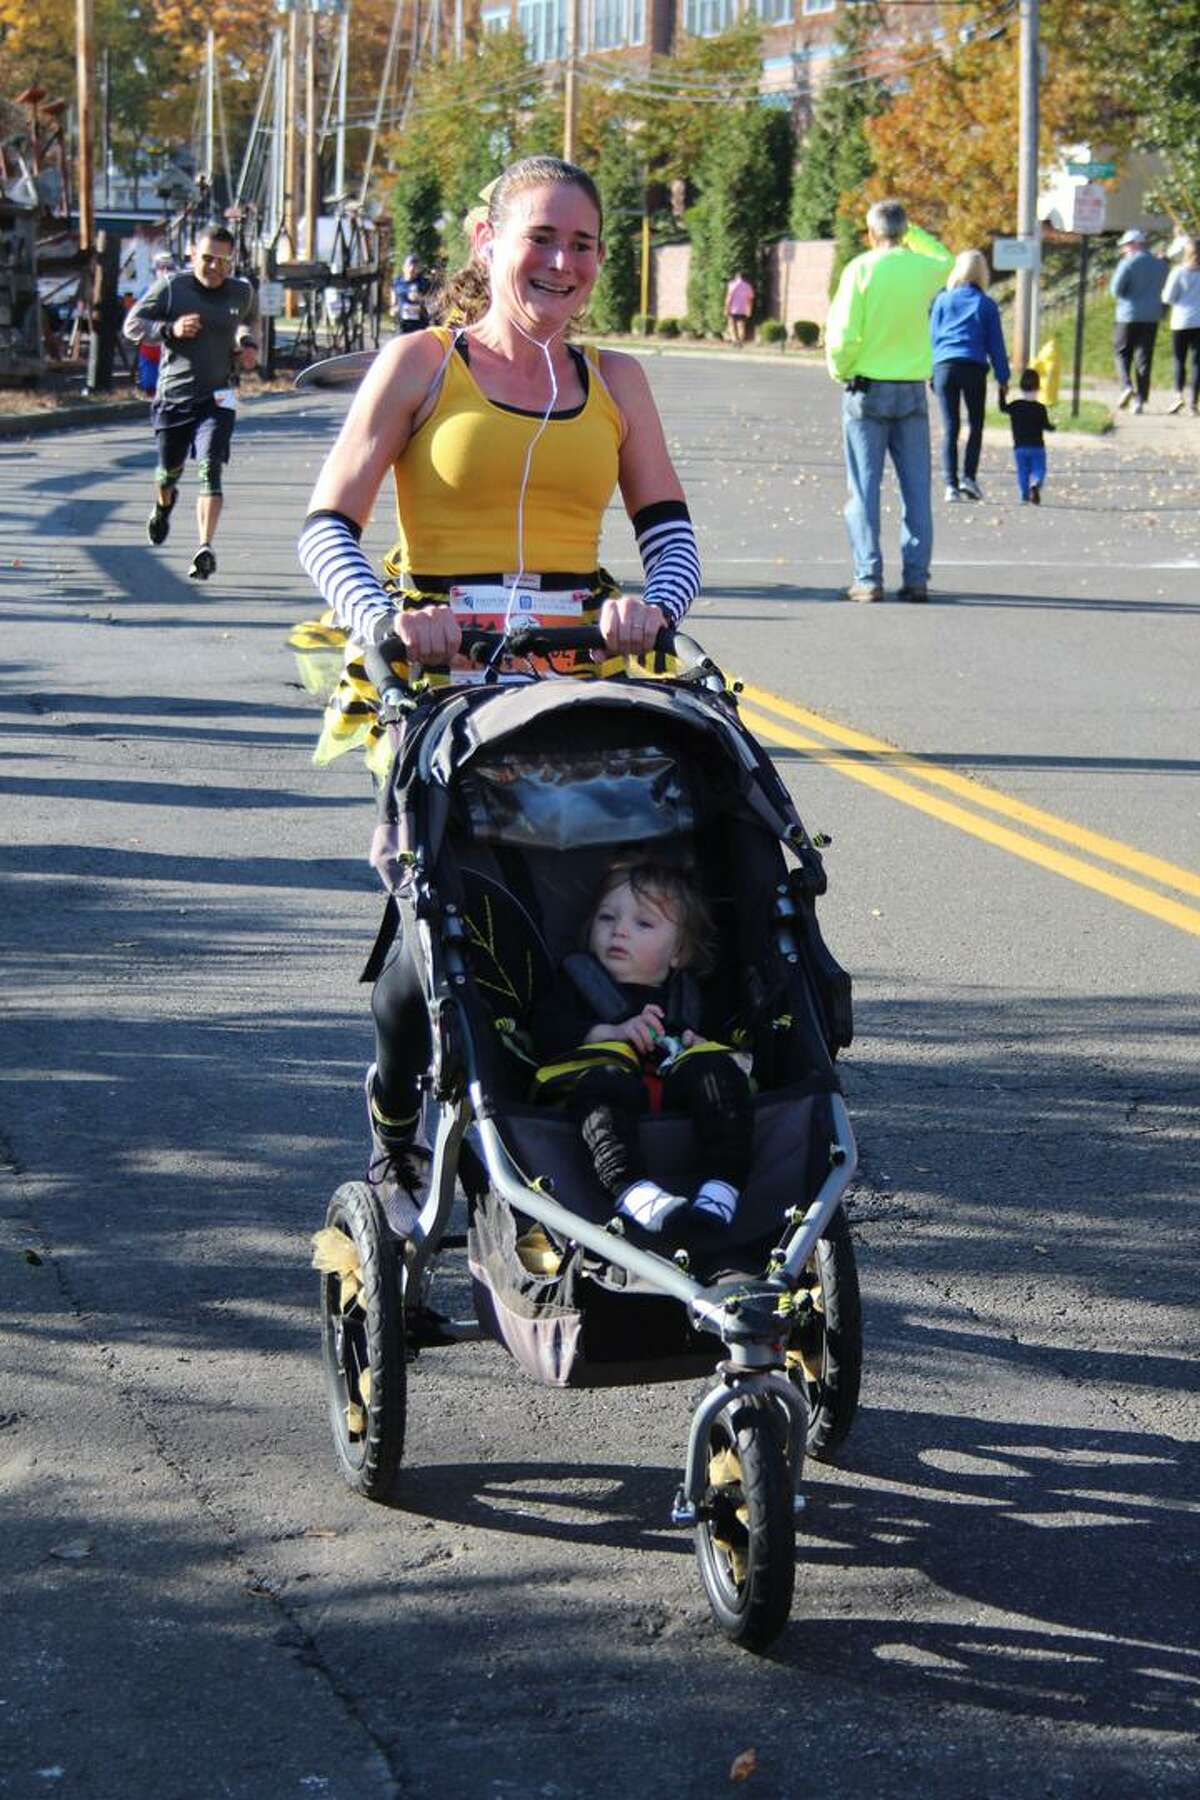 Families and individuals dressed up in costume while they ran in the 2019 Milford Trick or Trot 5K fundraiser for the Beth-El Center homeless shelter and soup kitchen.